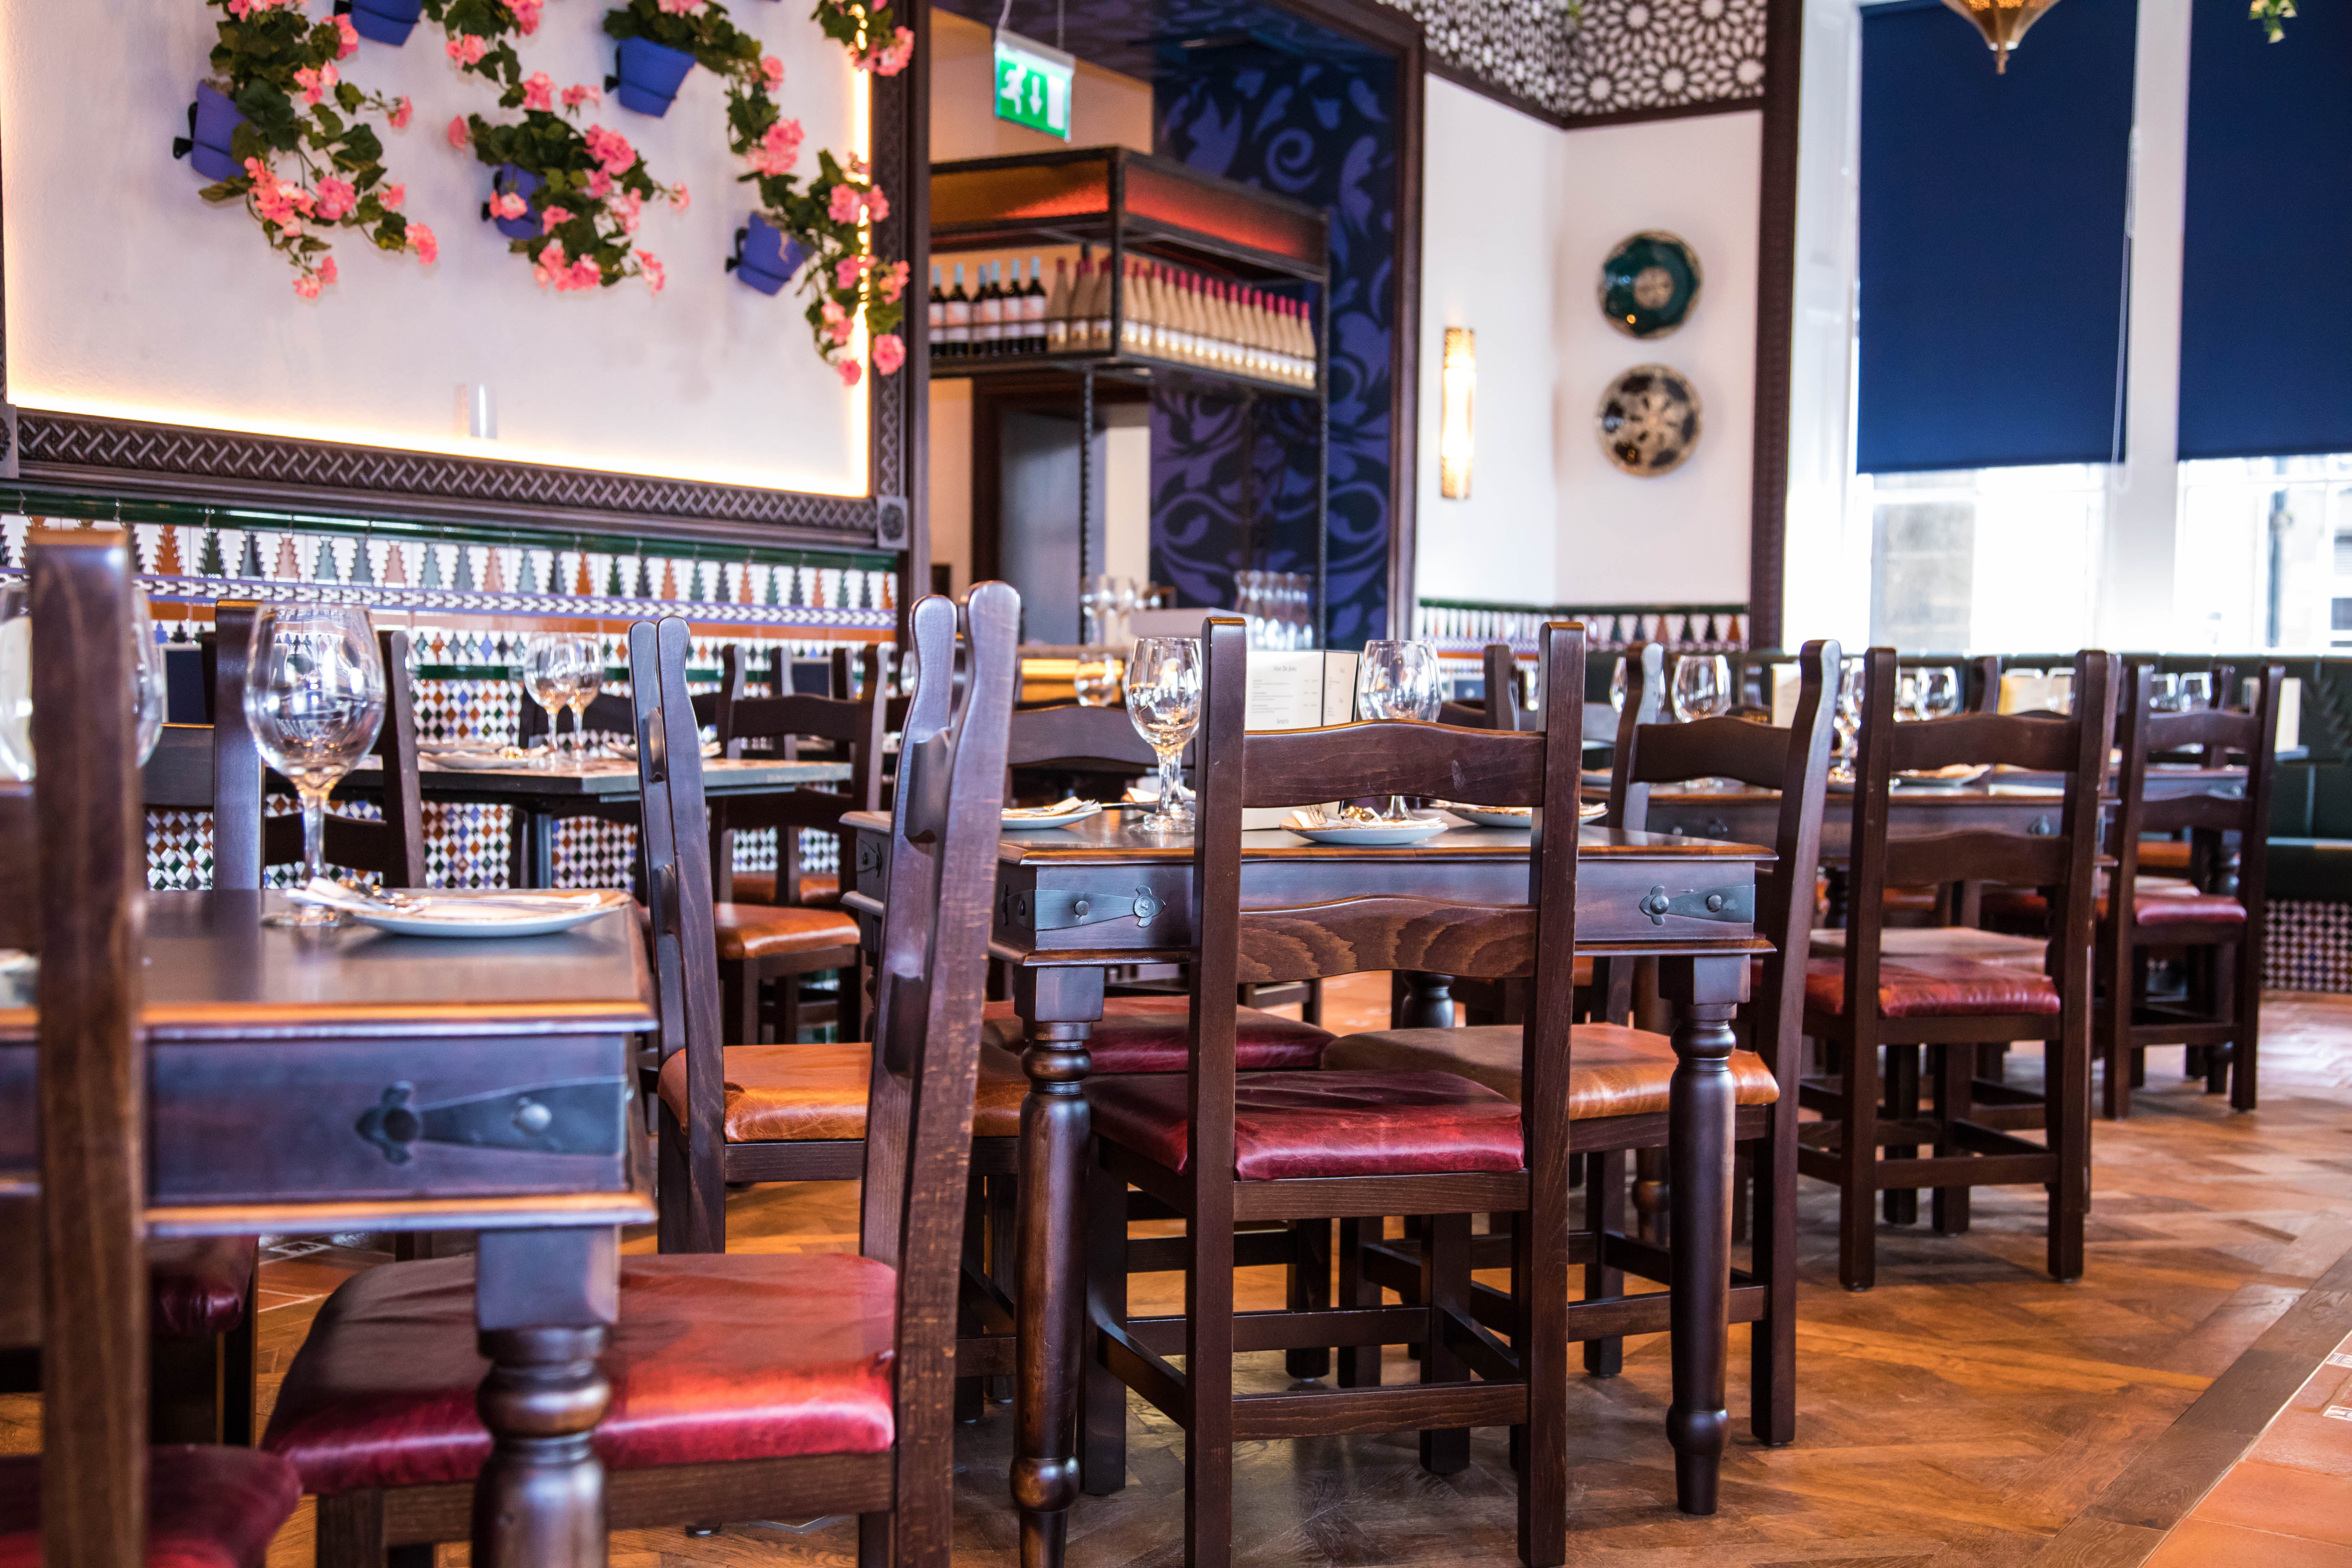 Been to Cafe Andaluz? Share your experiences!